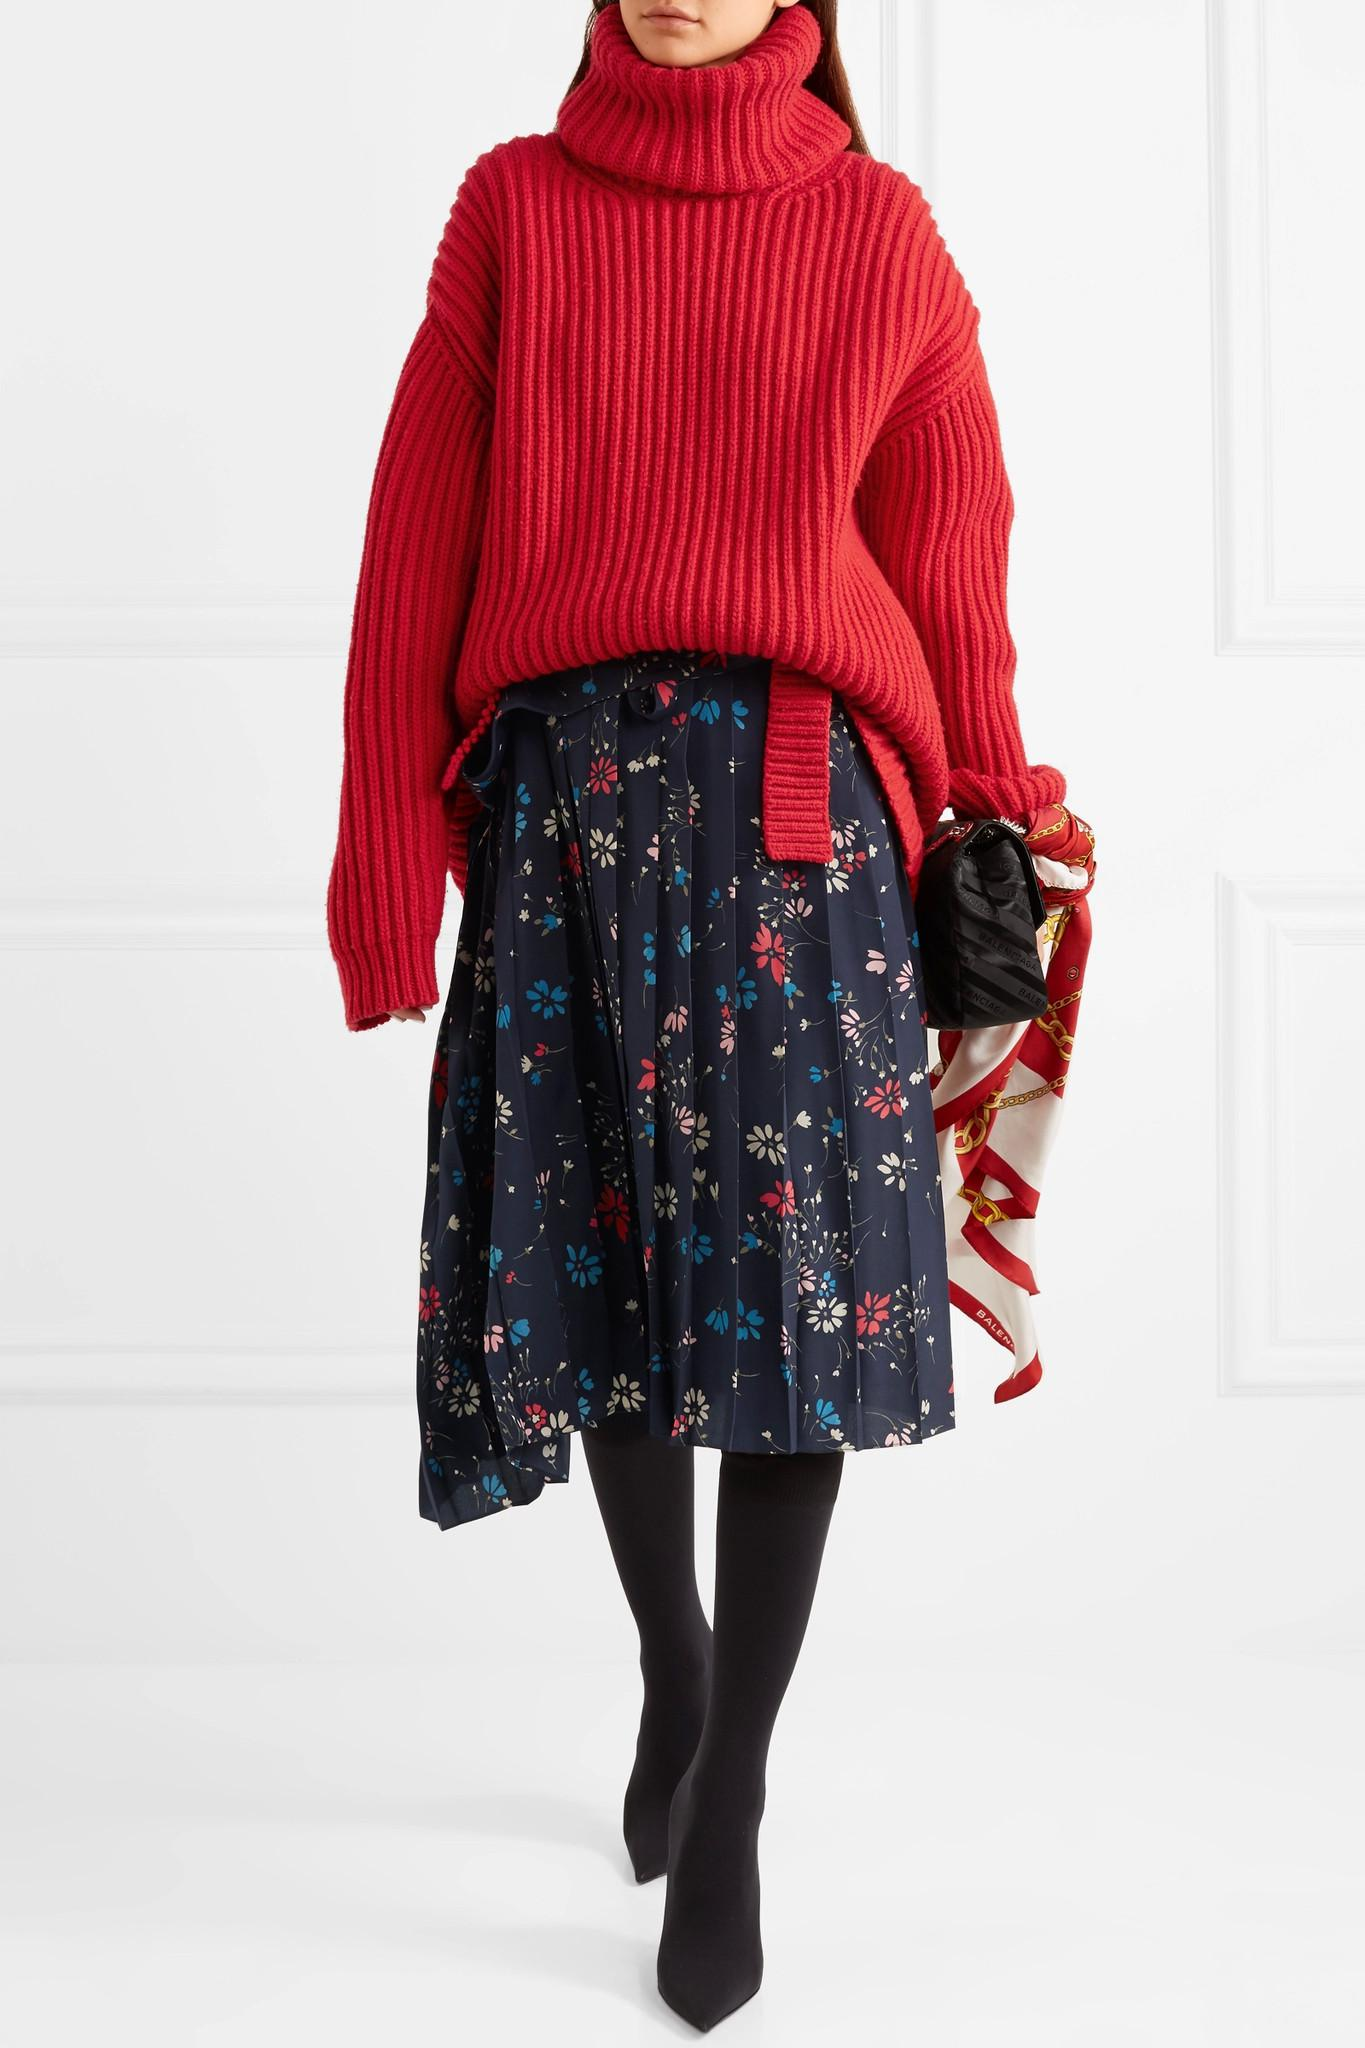 Balenciaga Oversized Ribbed Wool Turtleneck Sweater in Red   Lyst